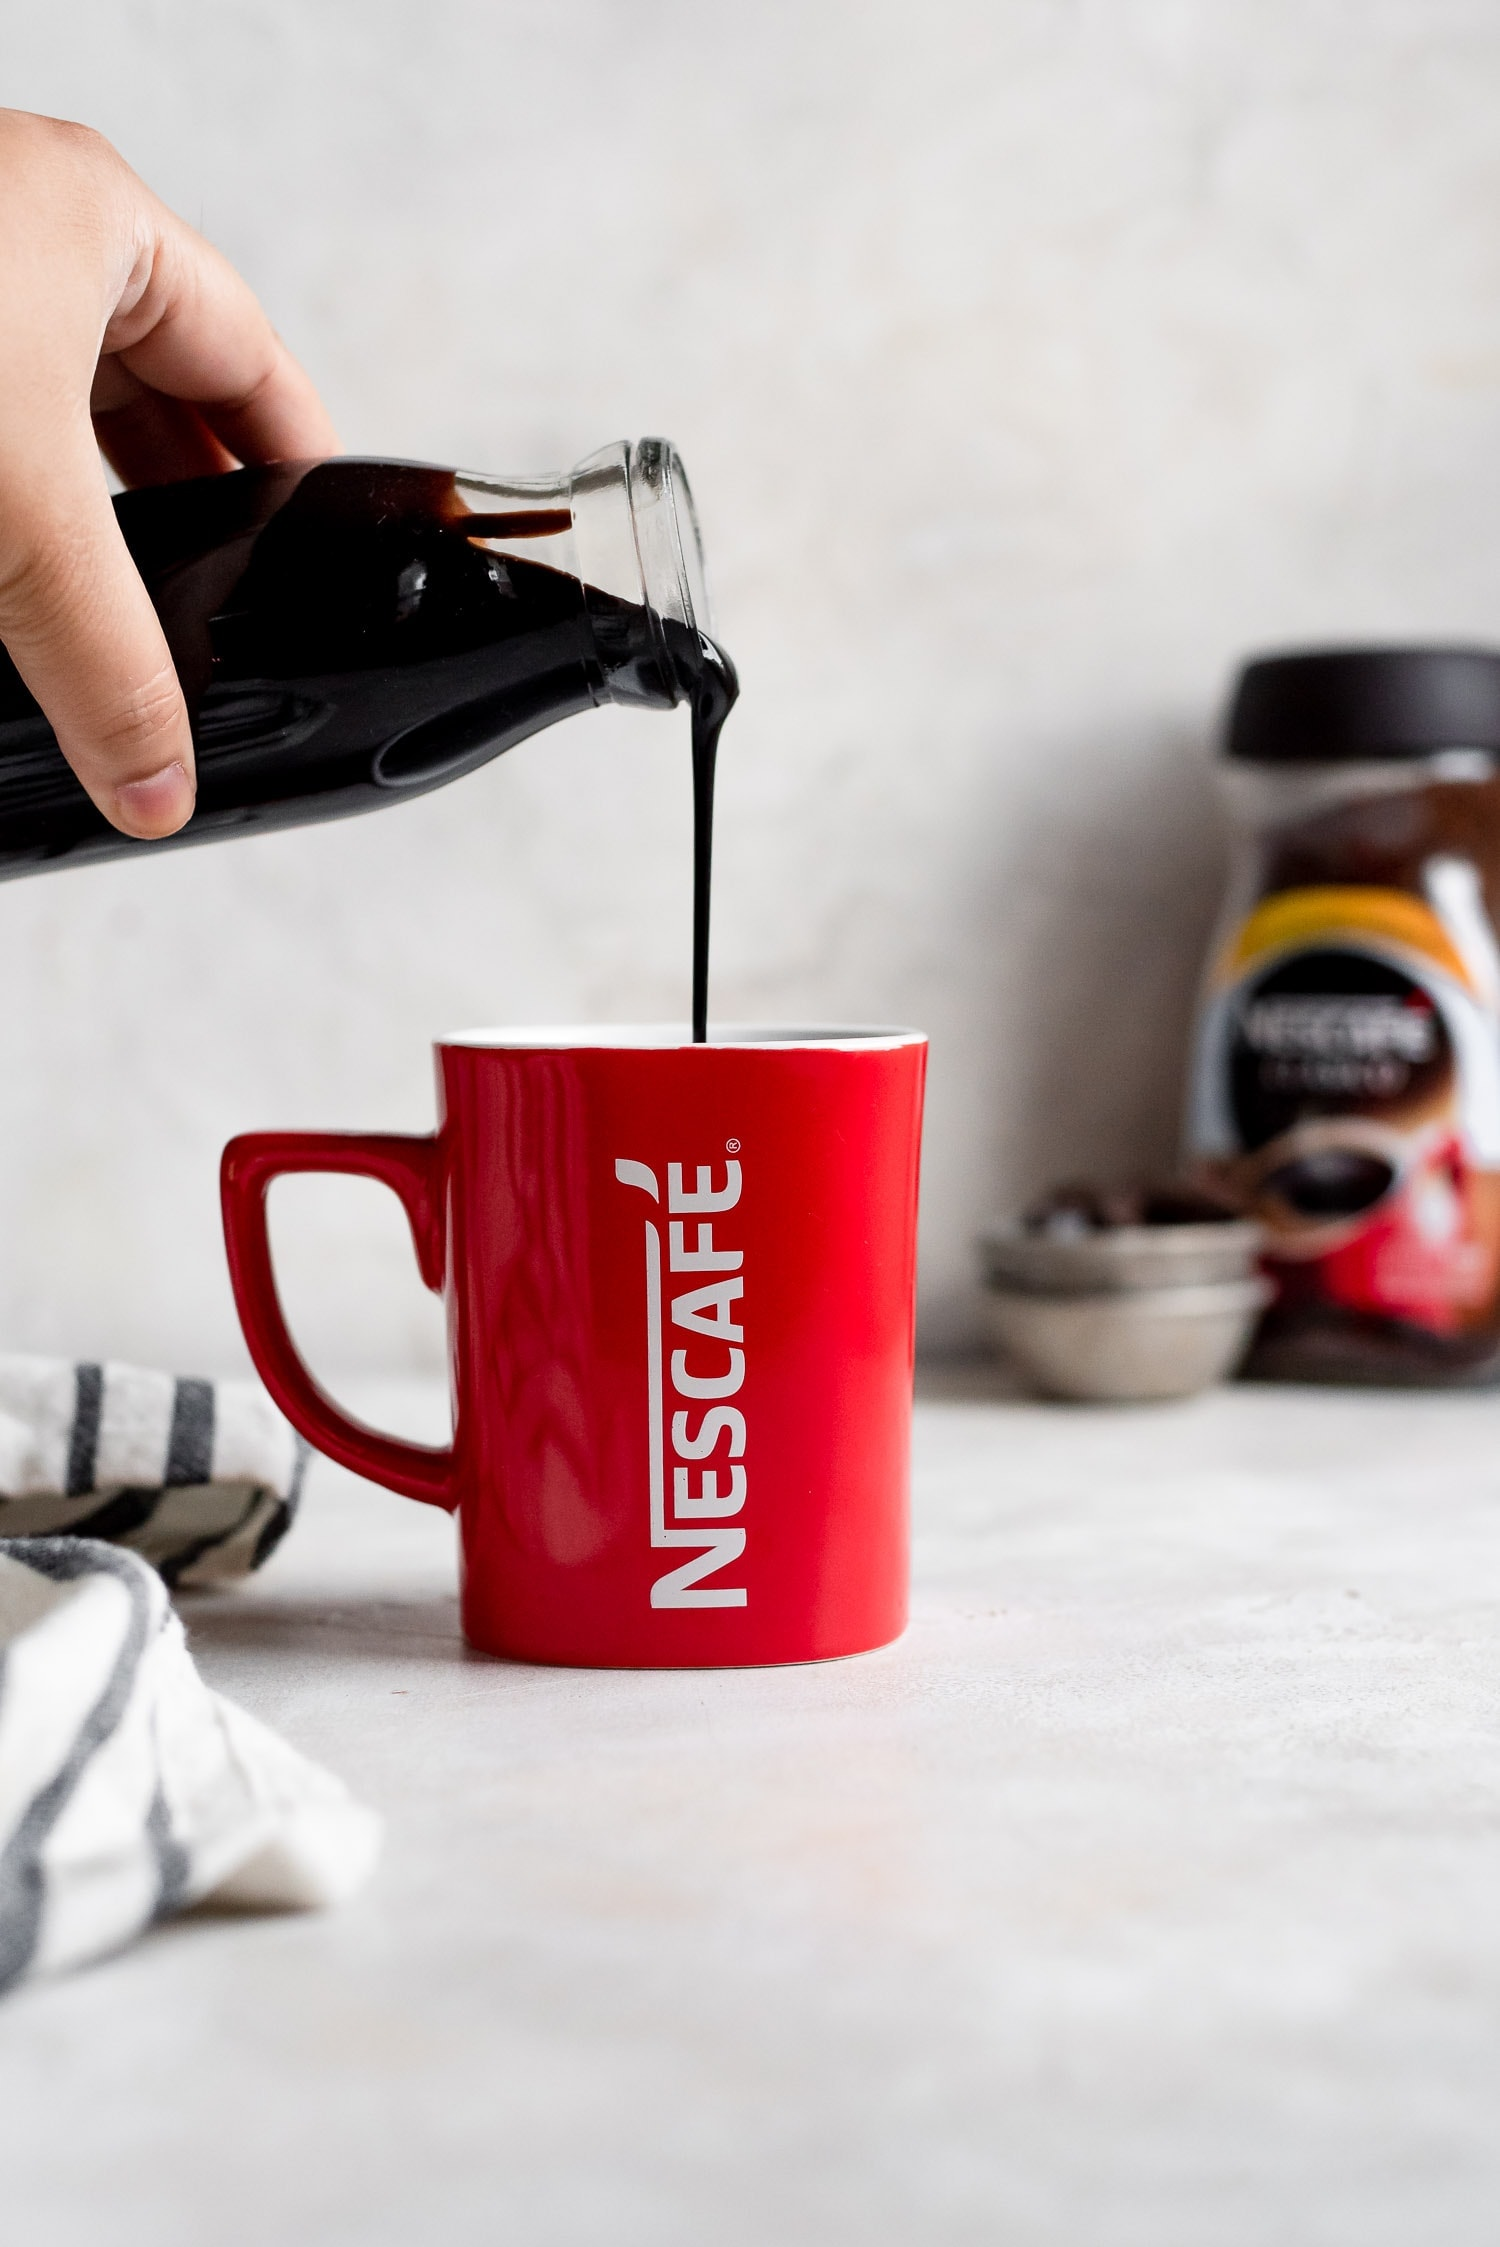 chocolate syrup being poured into mug of coffee